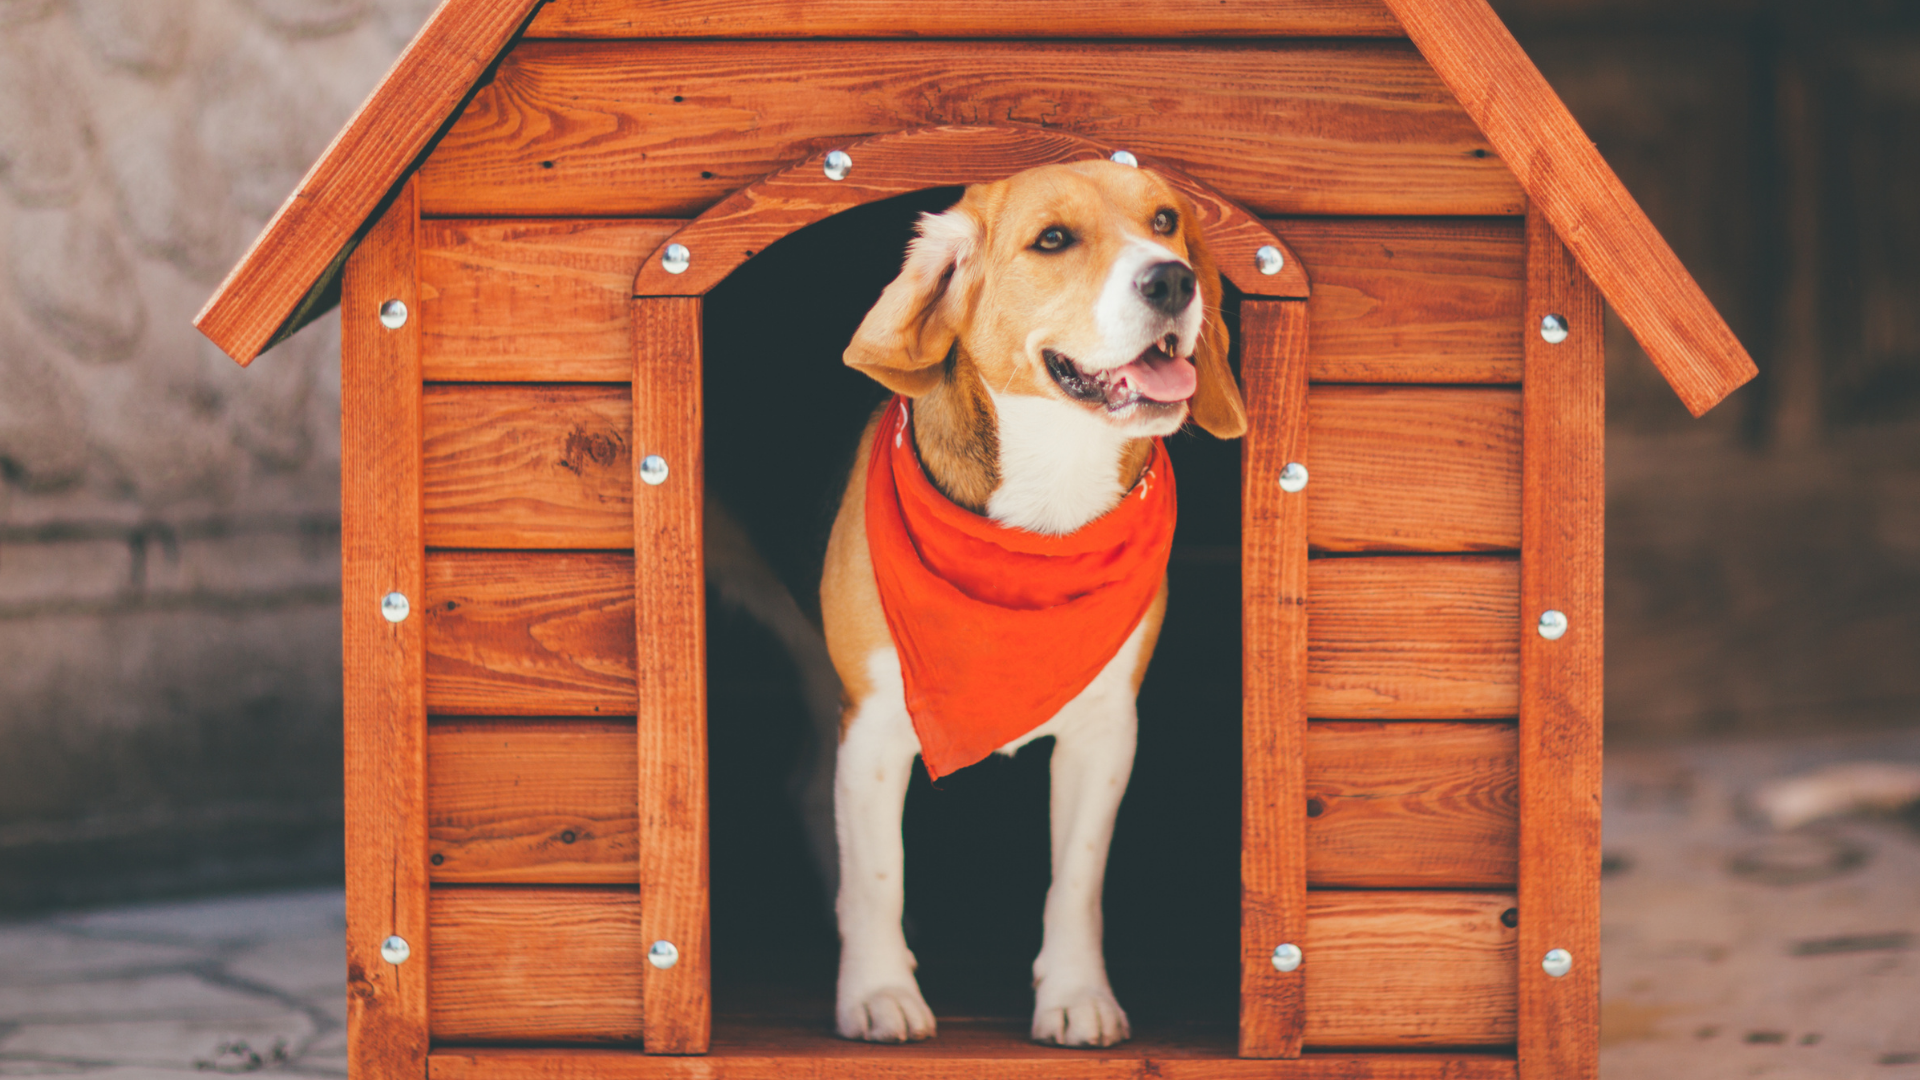 Should I get a bed, kennel or crate for my dog?